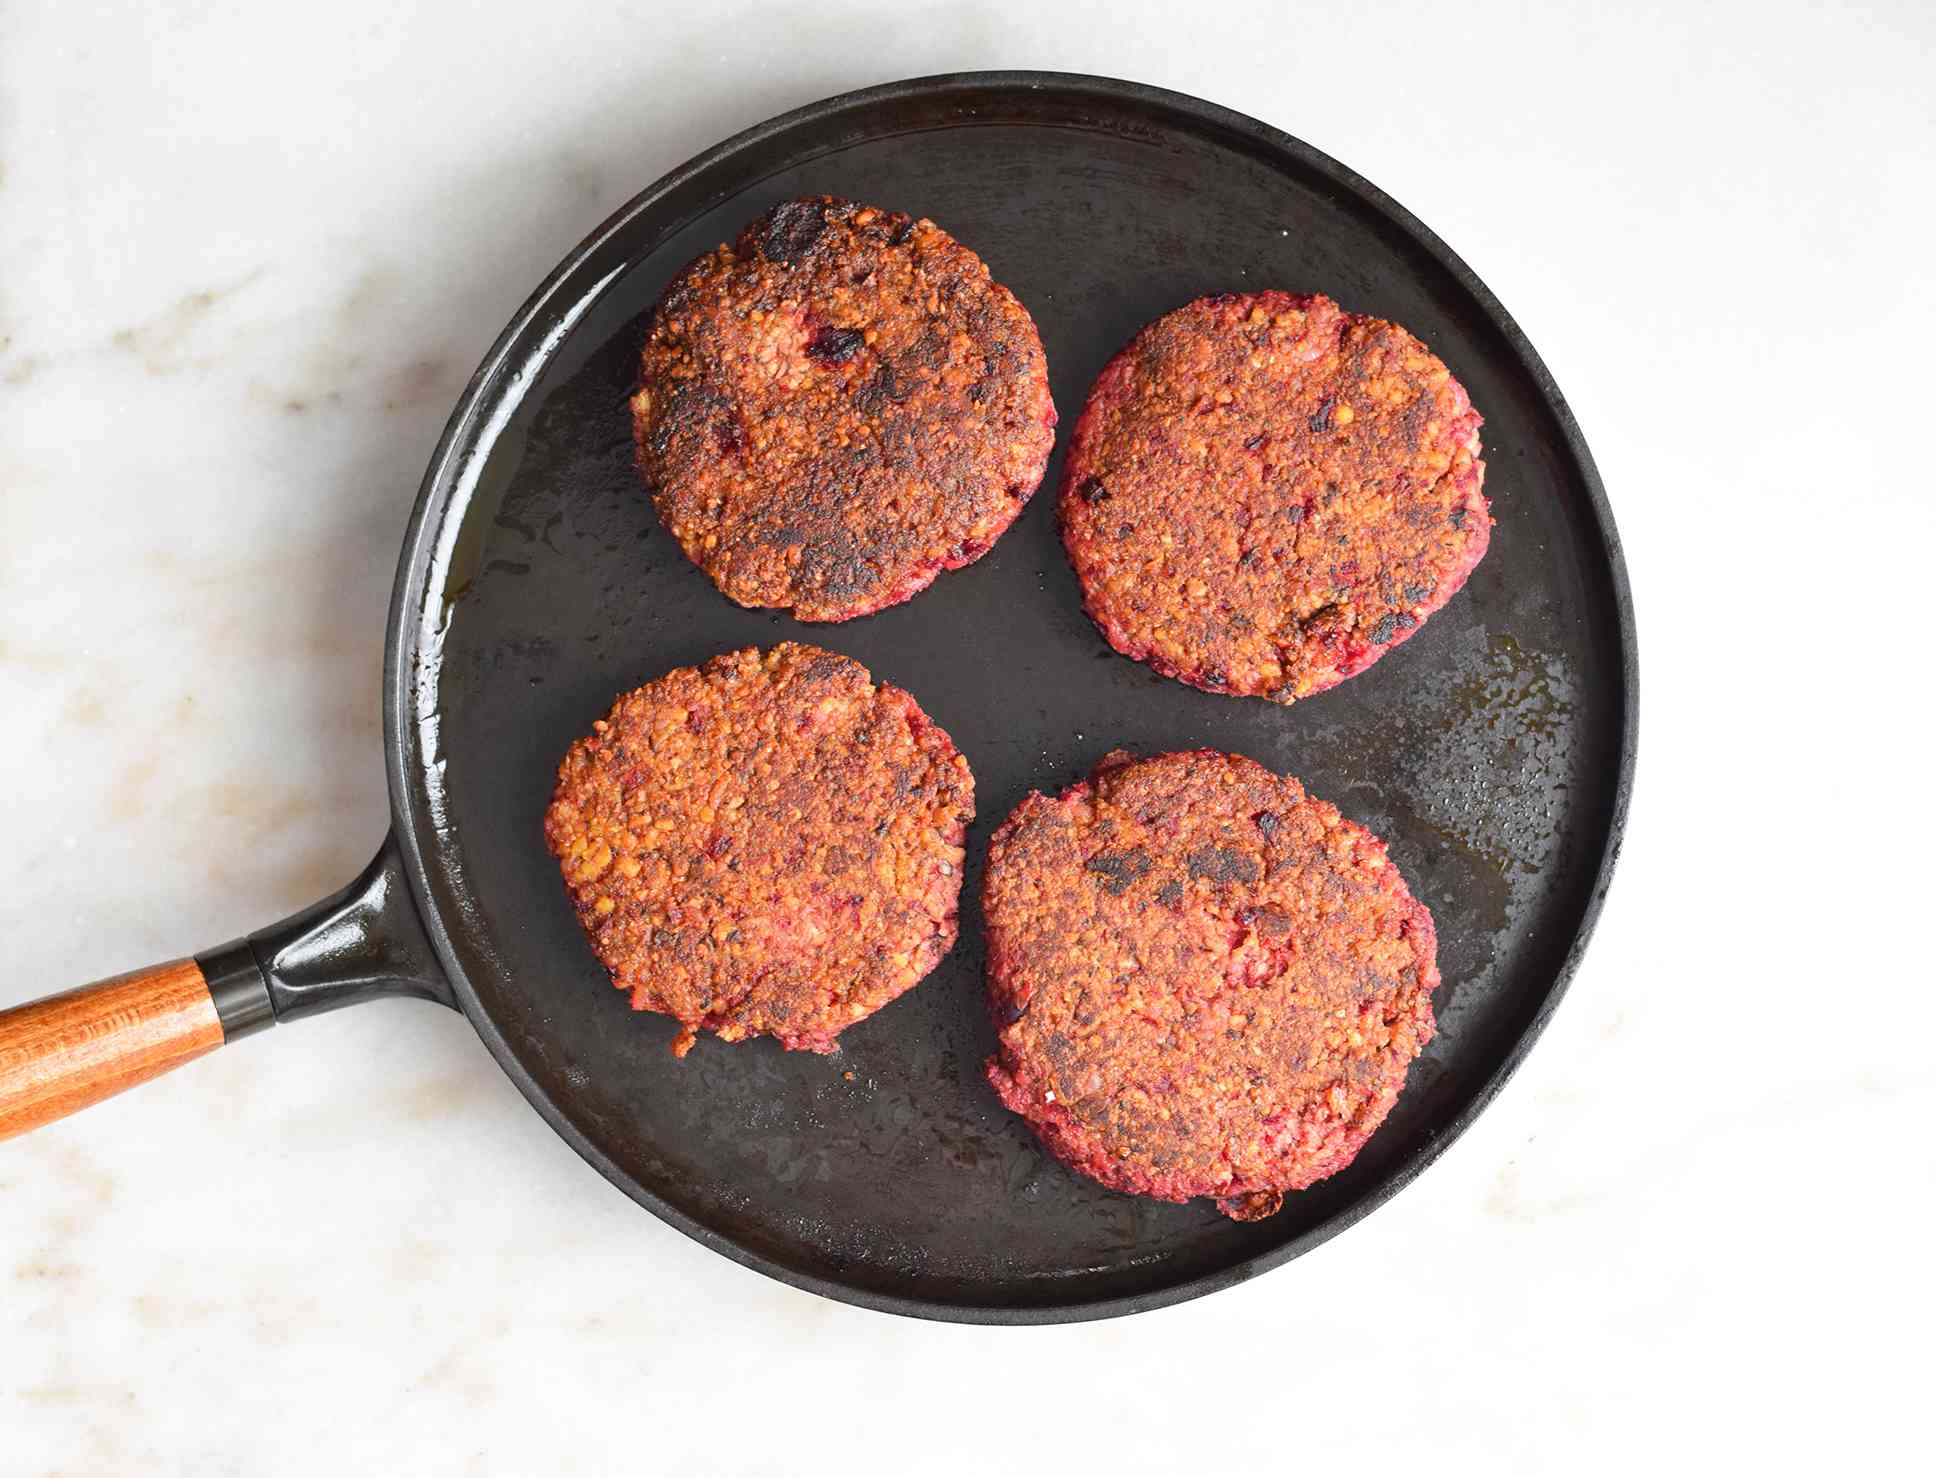 impossible burger patties cooked on a griddle